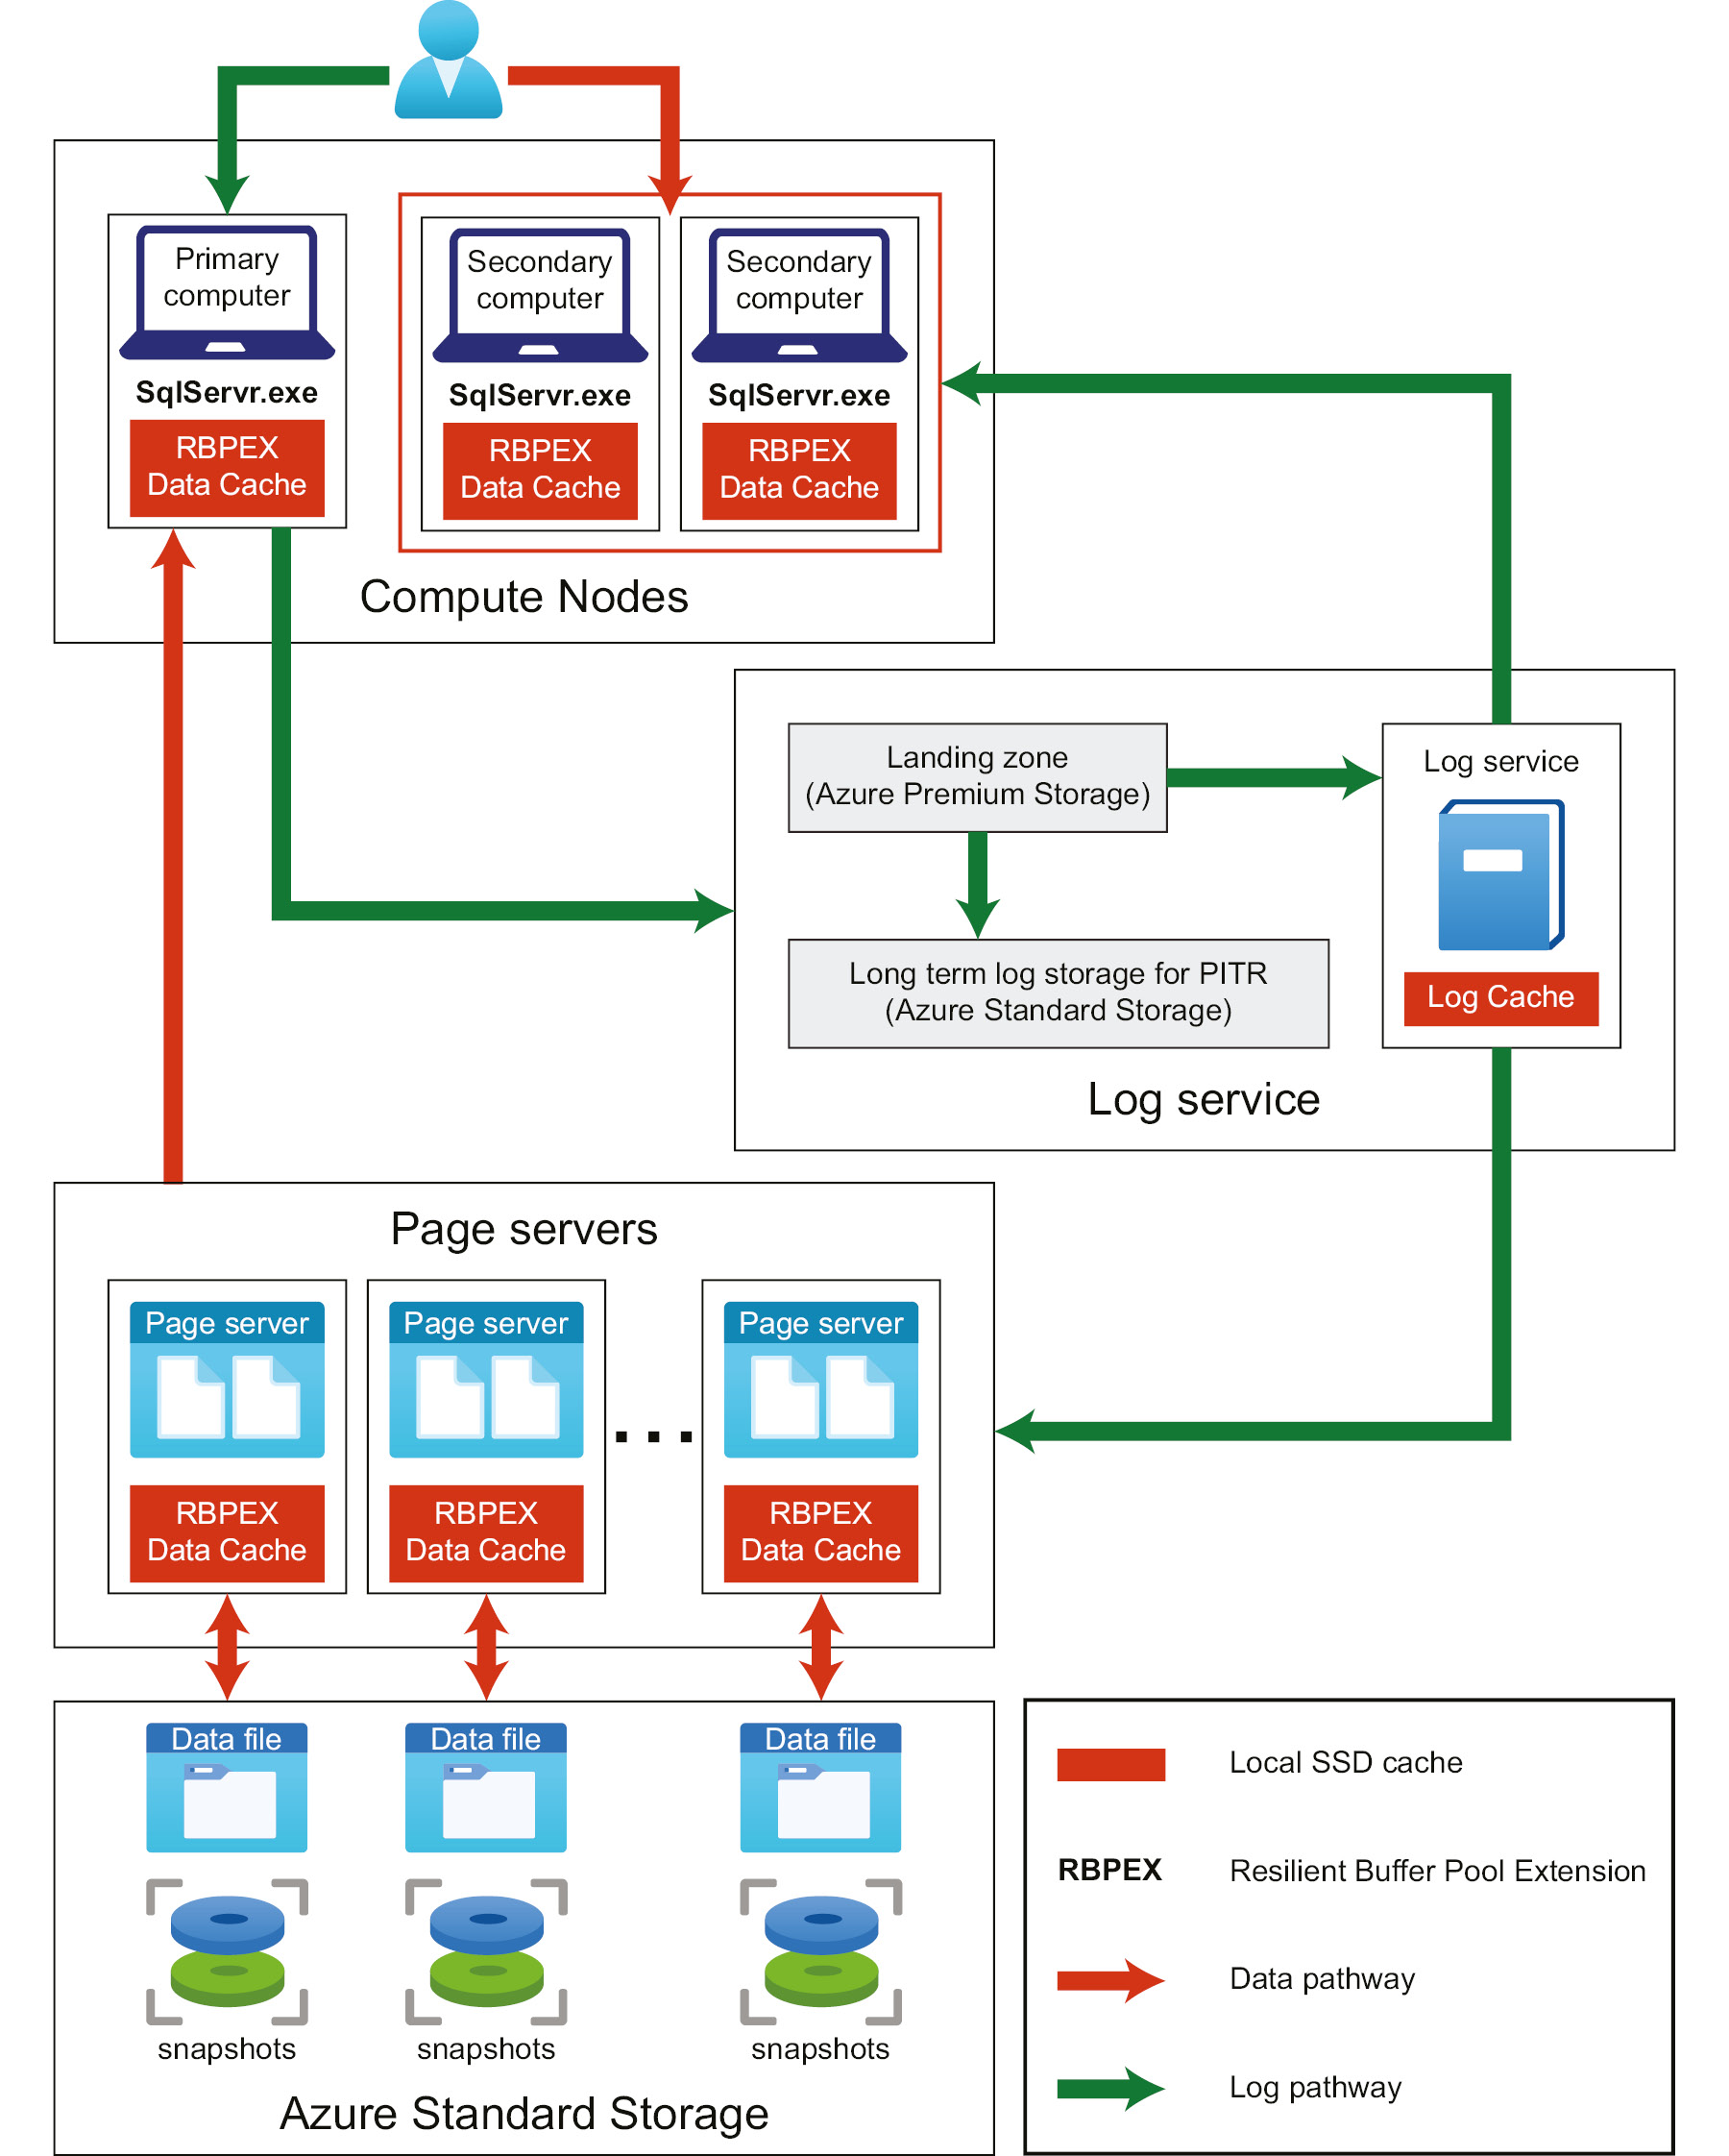 A detailed architecture diagram for Hyperscale